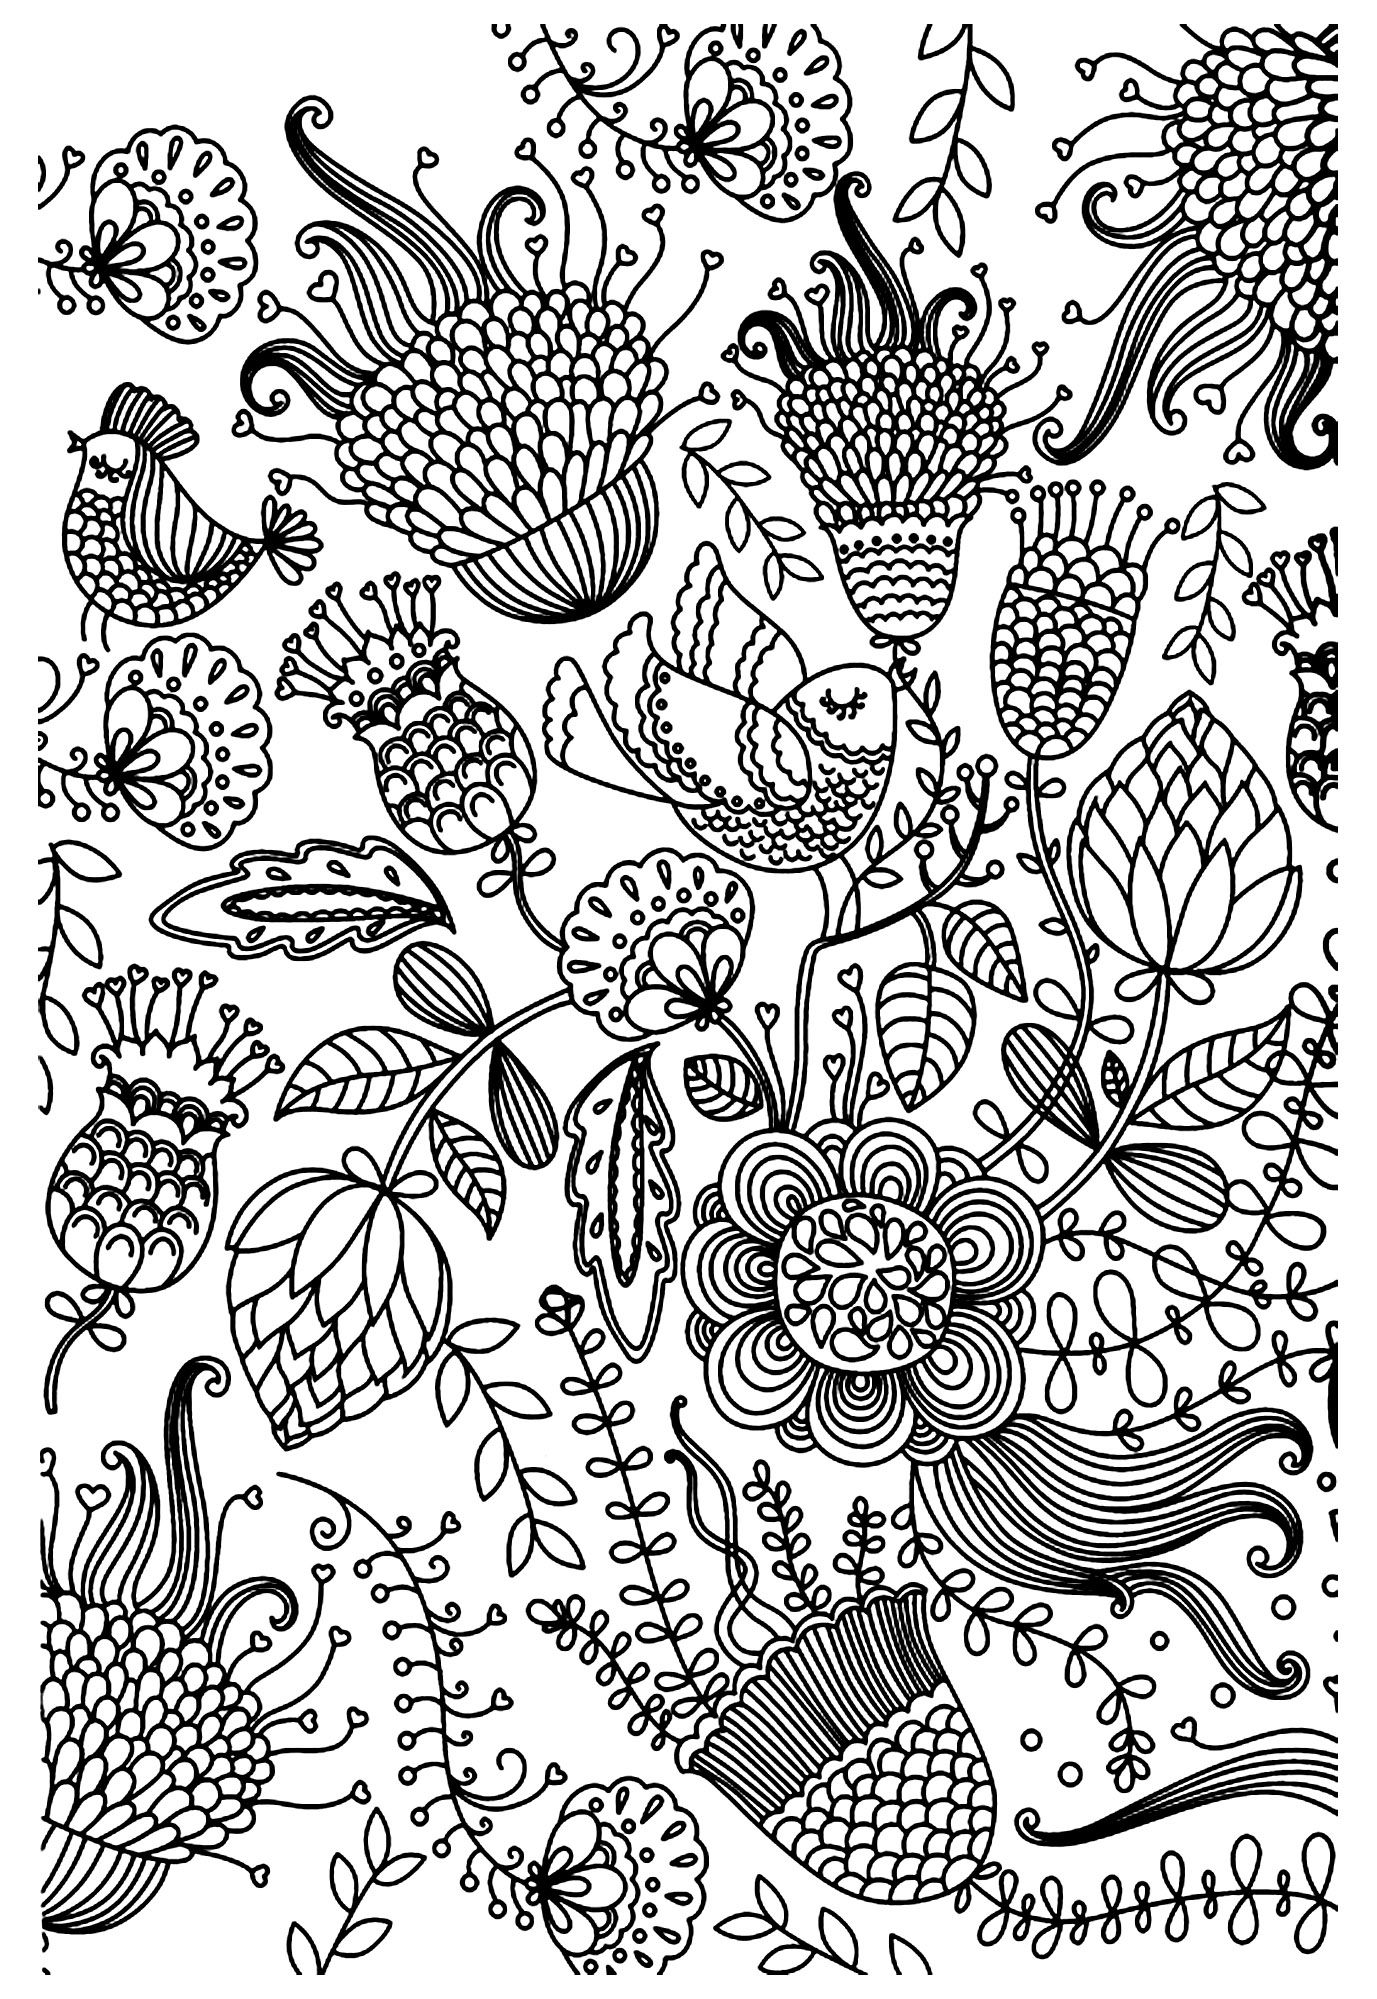 Zen coloring flowers - Zen Antistress Flowers Adult Coloring Pages Printable And Coloring Book To Print For Free Find More Coloring Pages Online For Kids And Adults Of Zen